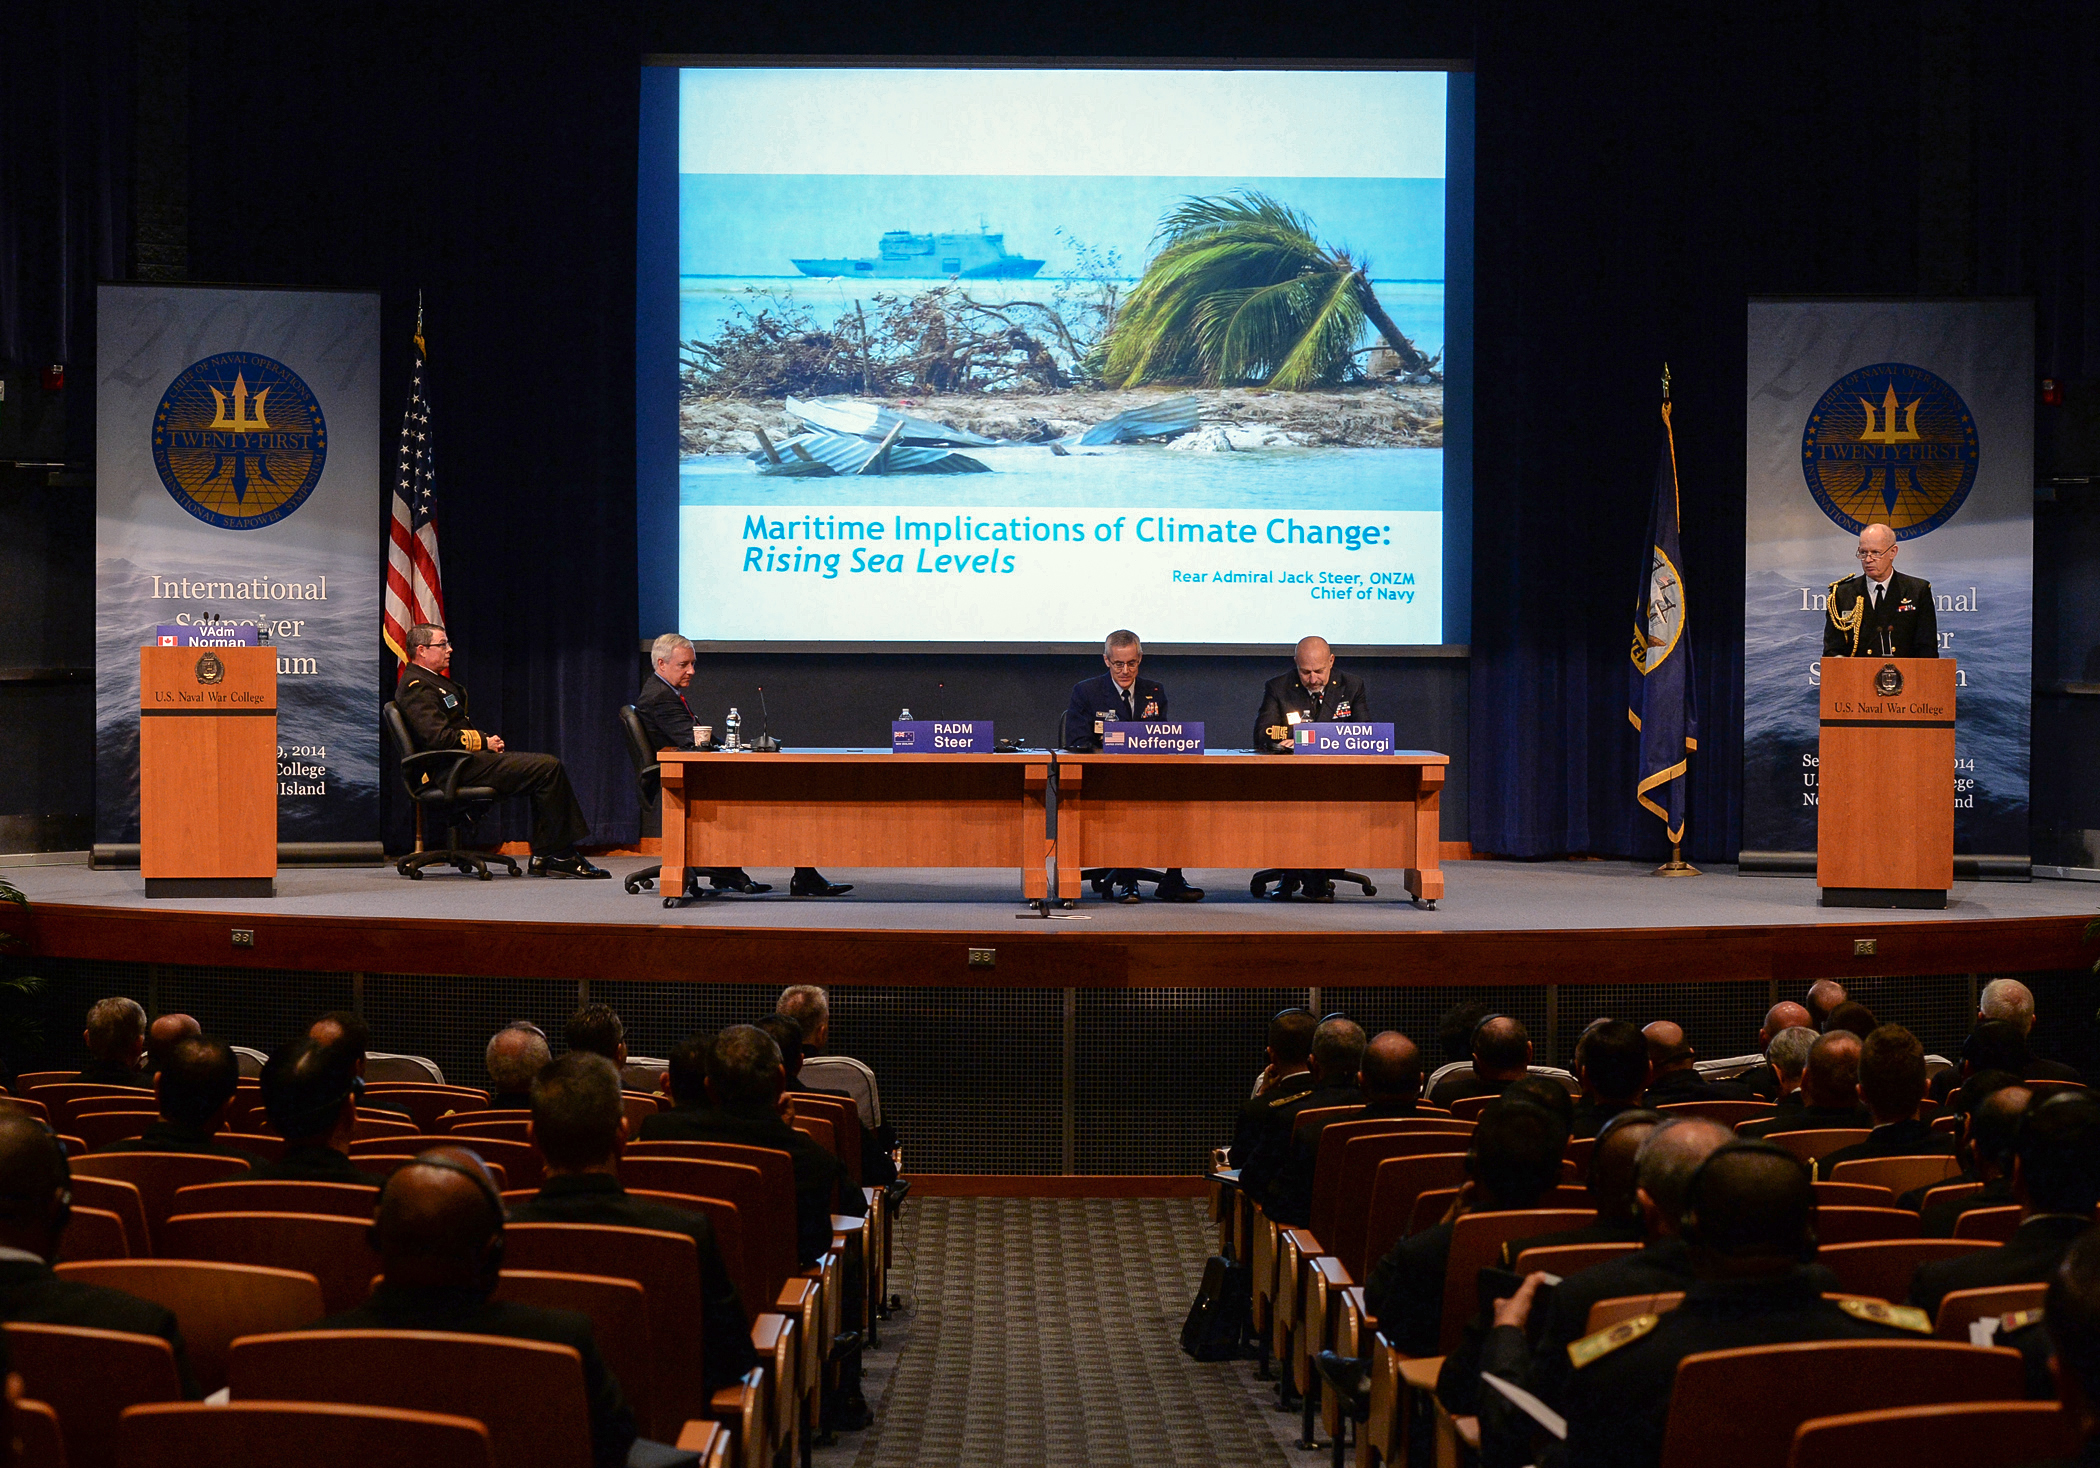 """Maritime Implications of Climate Change"" discussion panel during the Chief of Naval Operations' 21st International Seapower Symposium at the U.S. Navy War College in Newport, R.I."